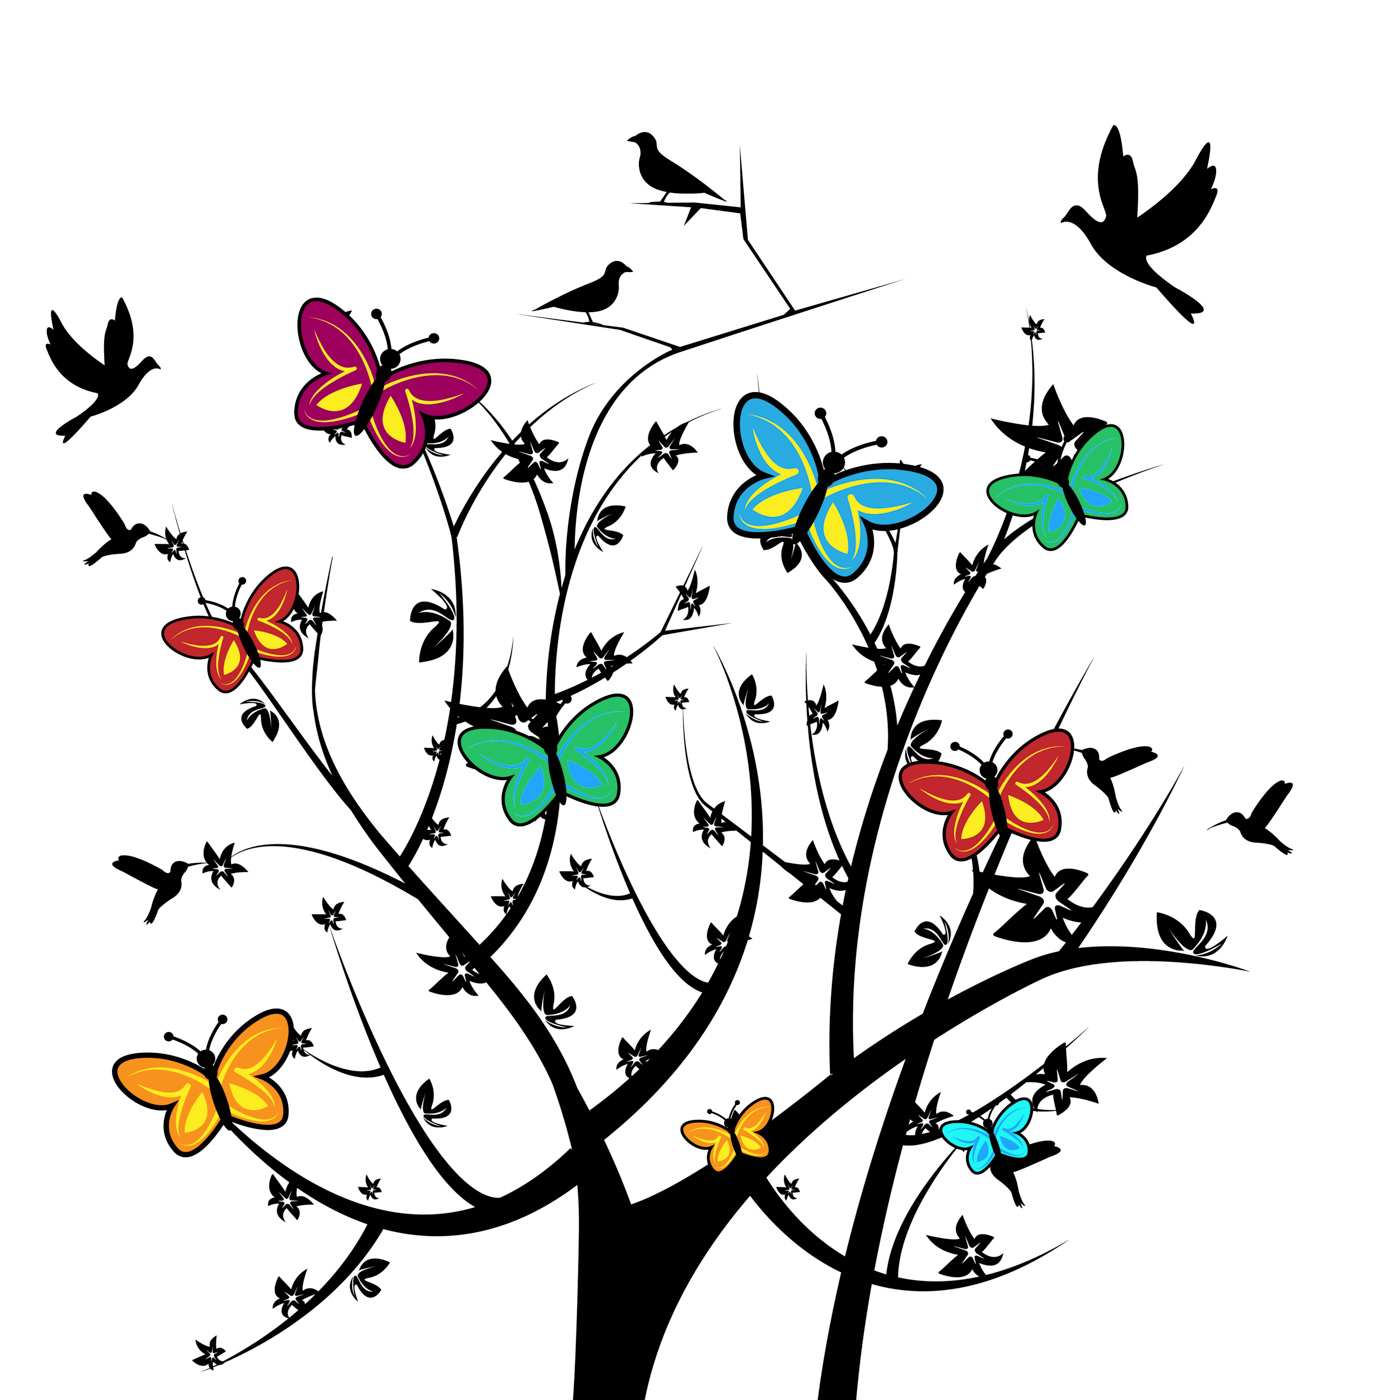 Butterflies in tree indicates natural environment and nature photo